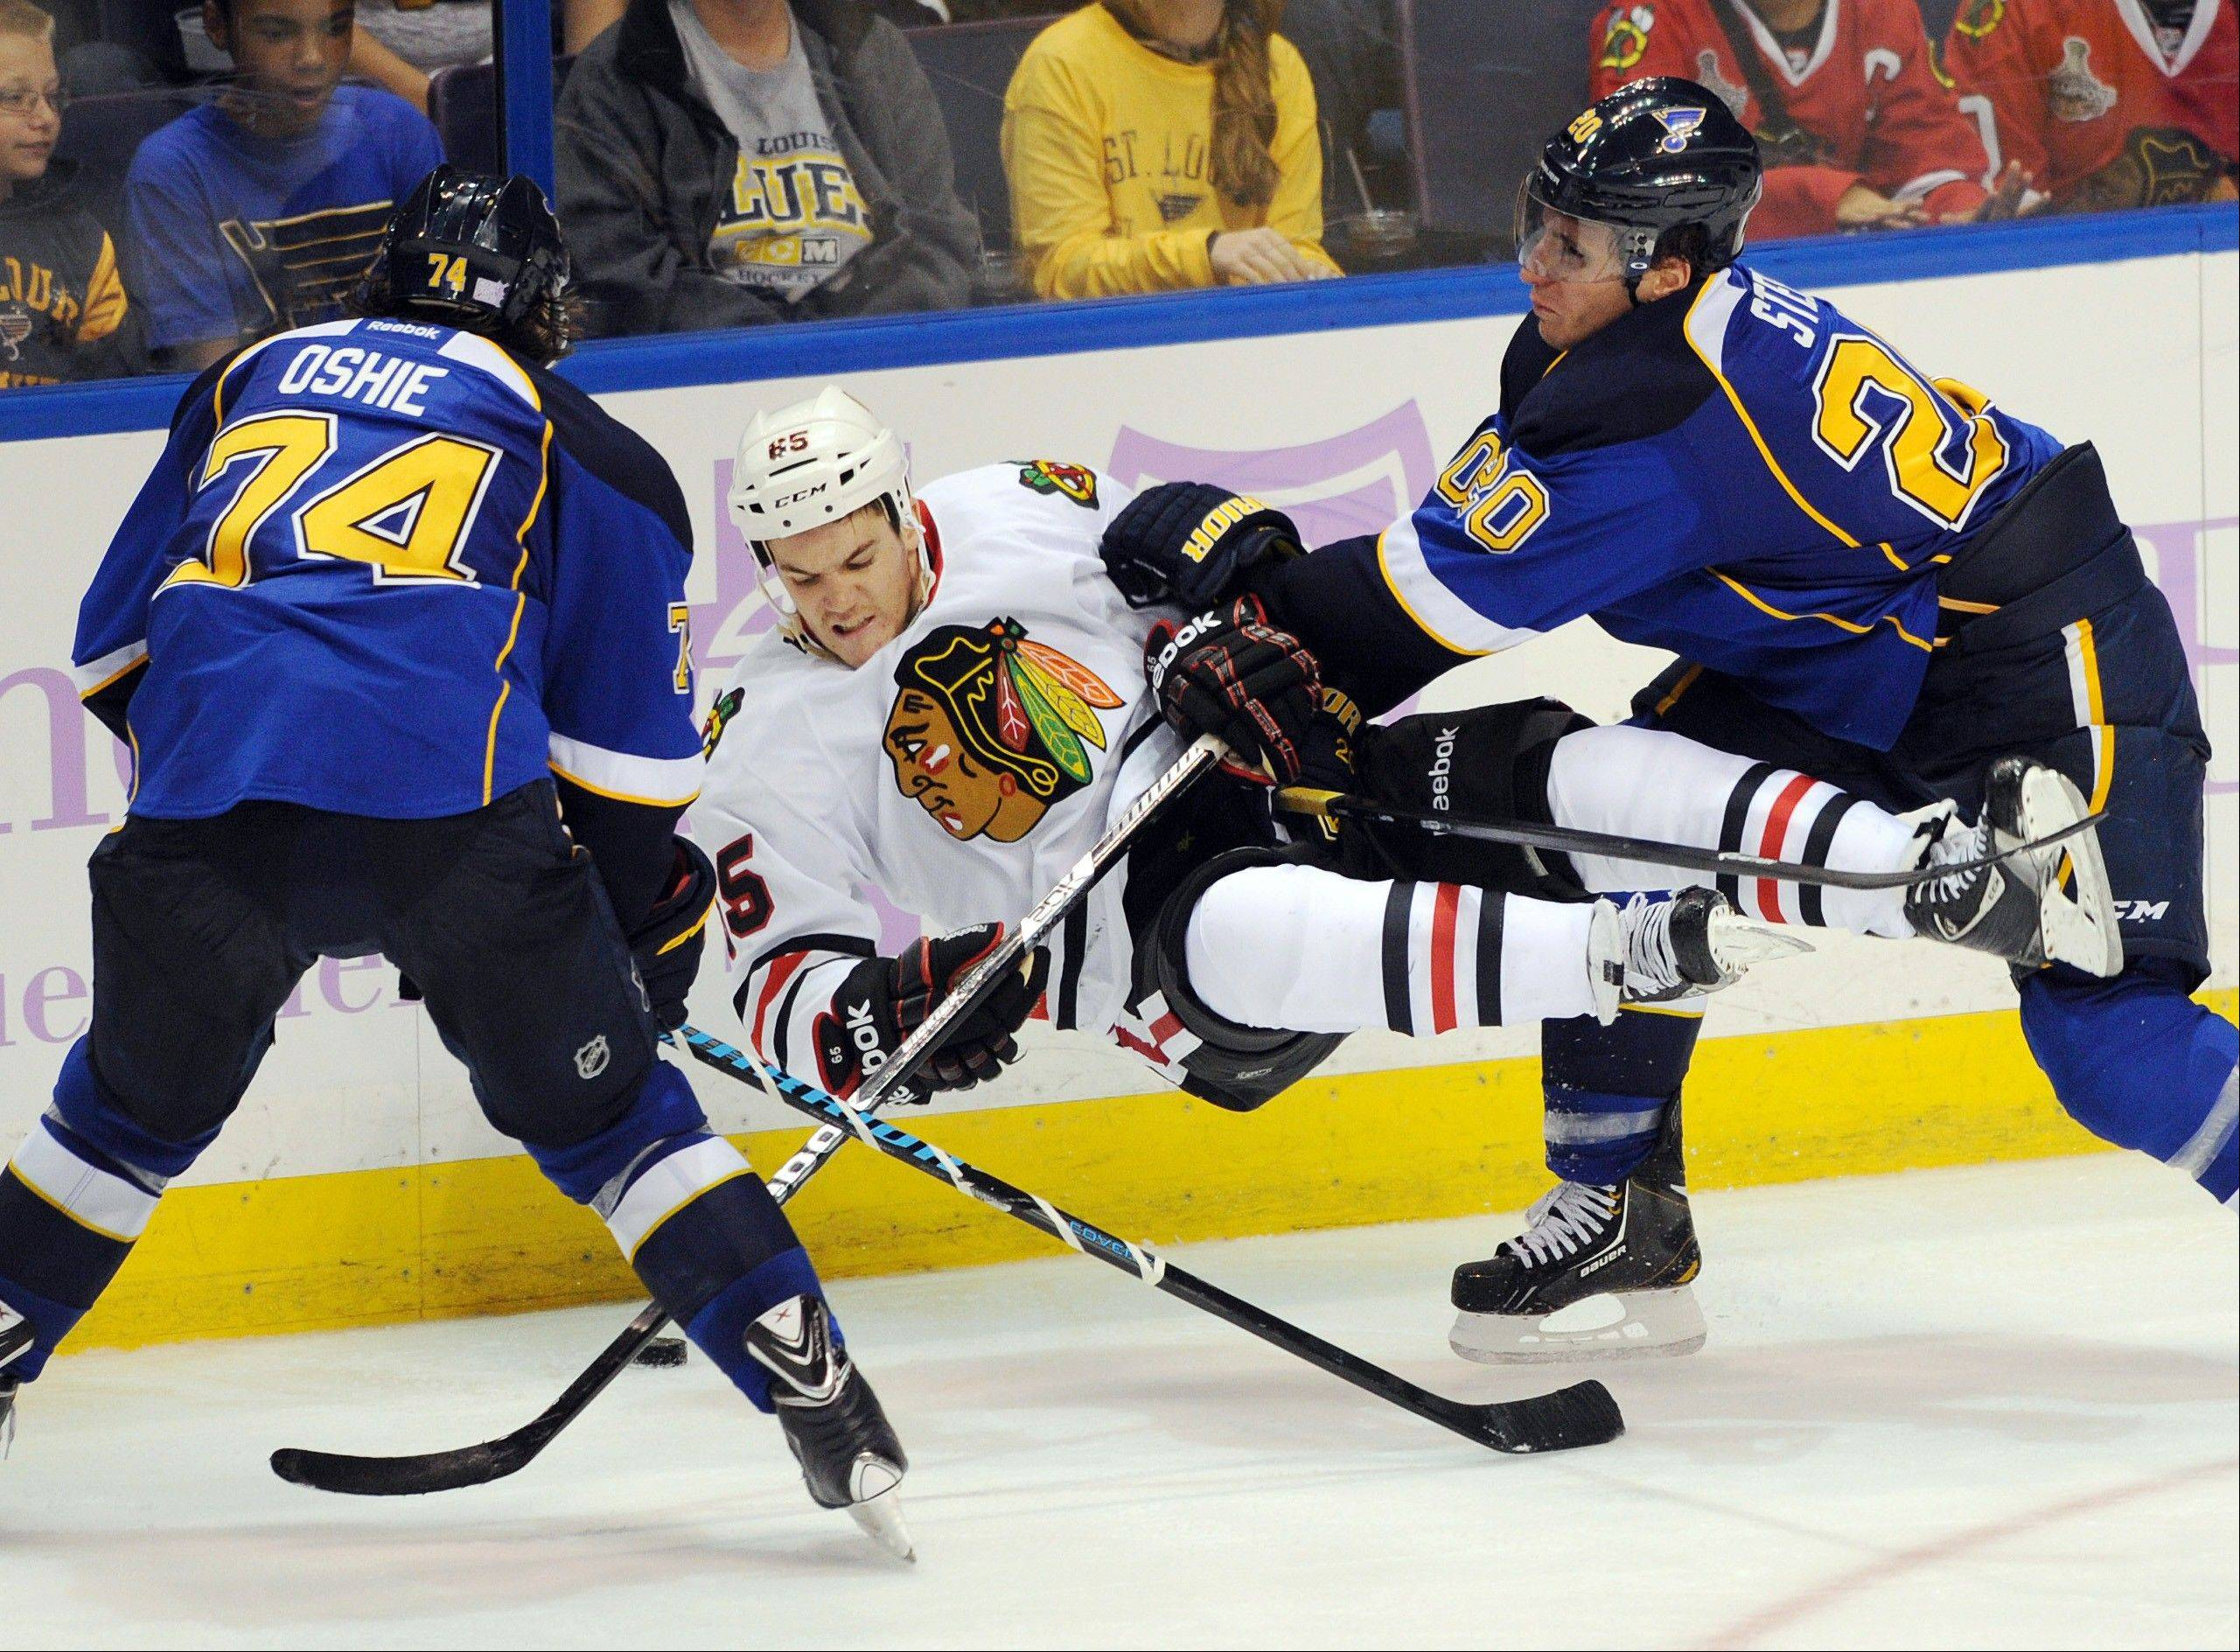 St. Louis Blues' Alexander Steen, right, checks Andrew Shaw of the Blackhawks in their game Wednesday night in St. Louis. The Blackhawks come home with two games this weekend at the United Center.